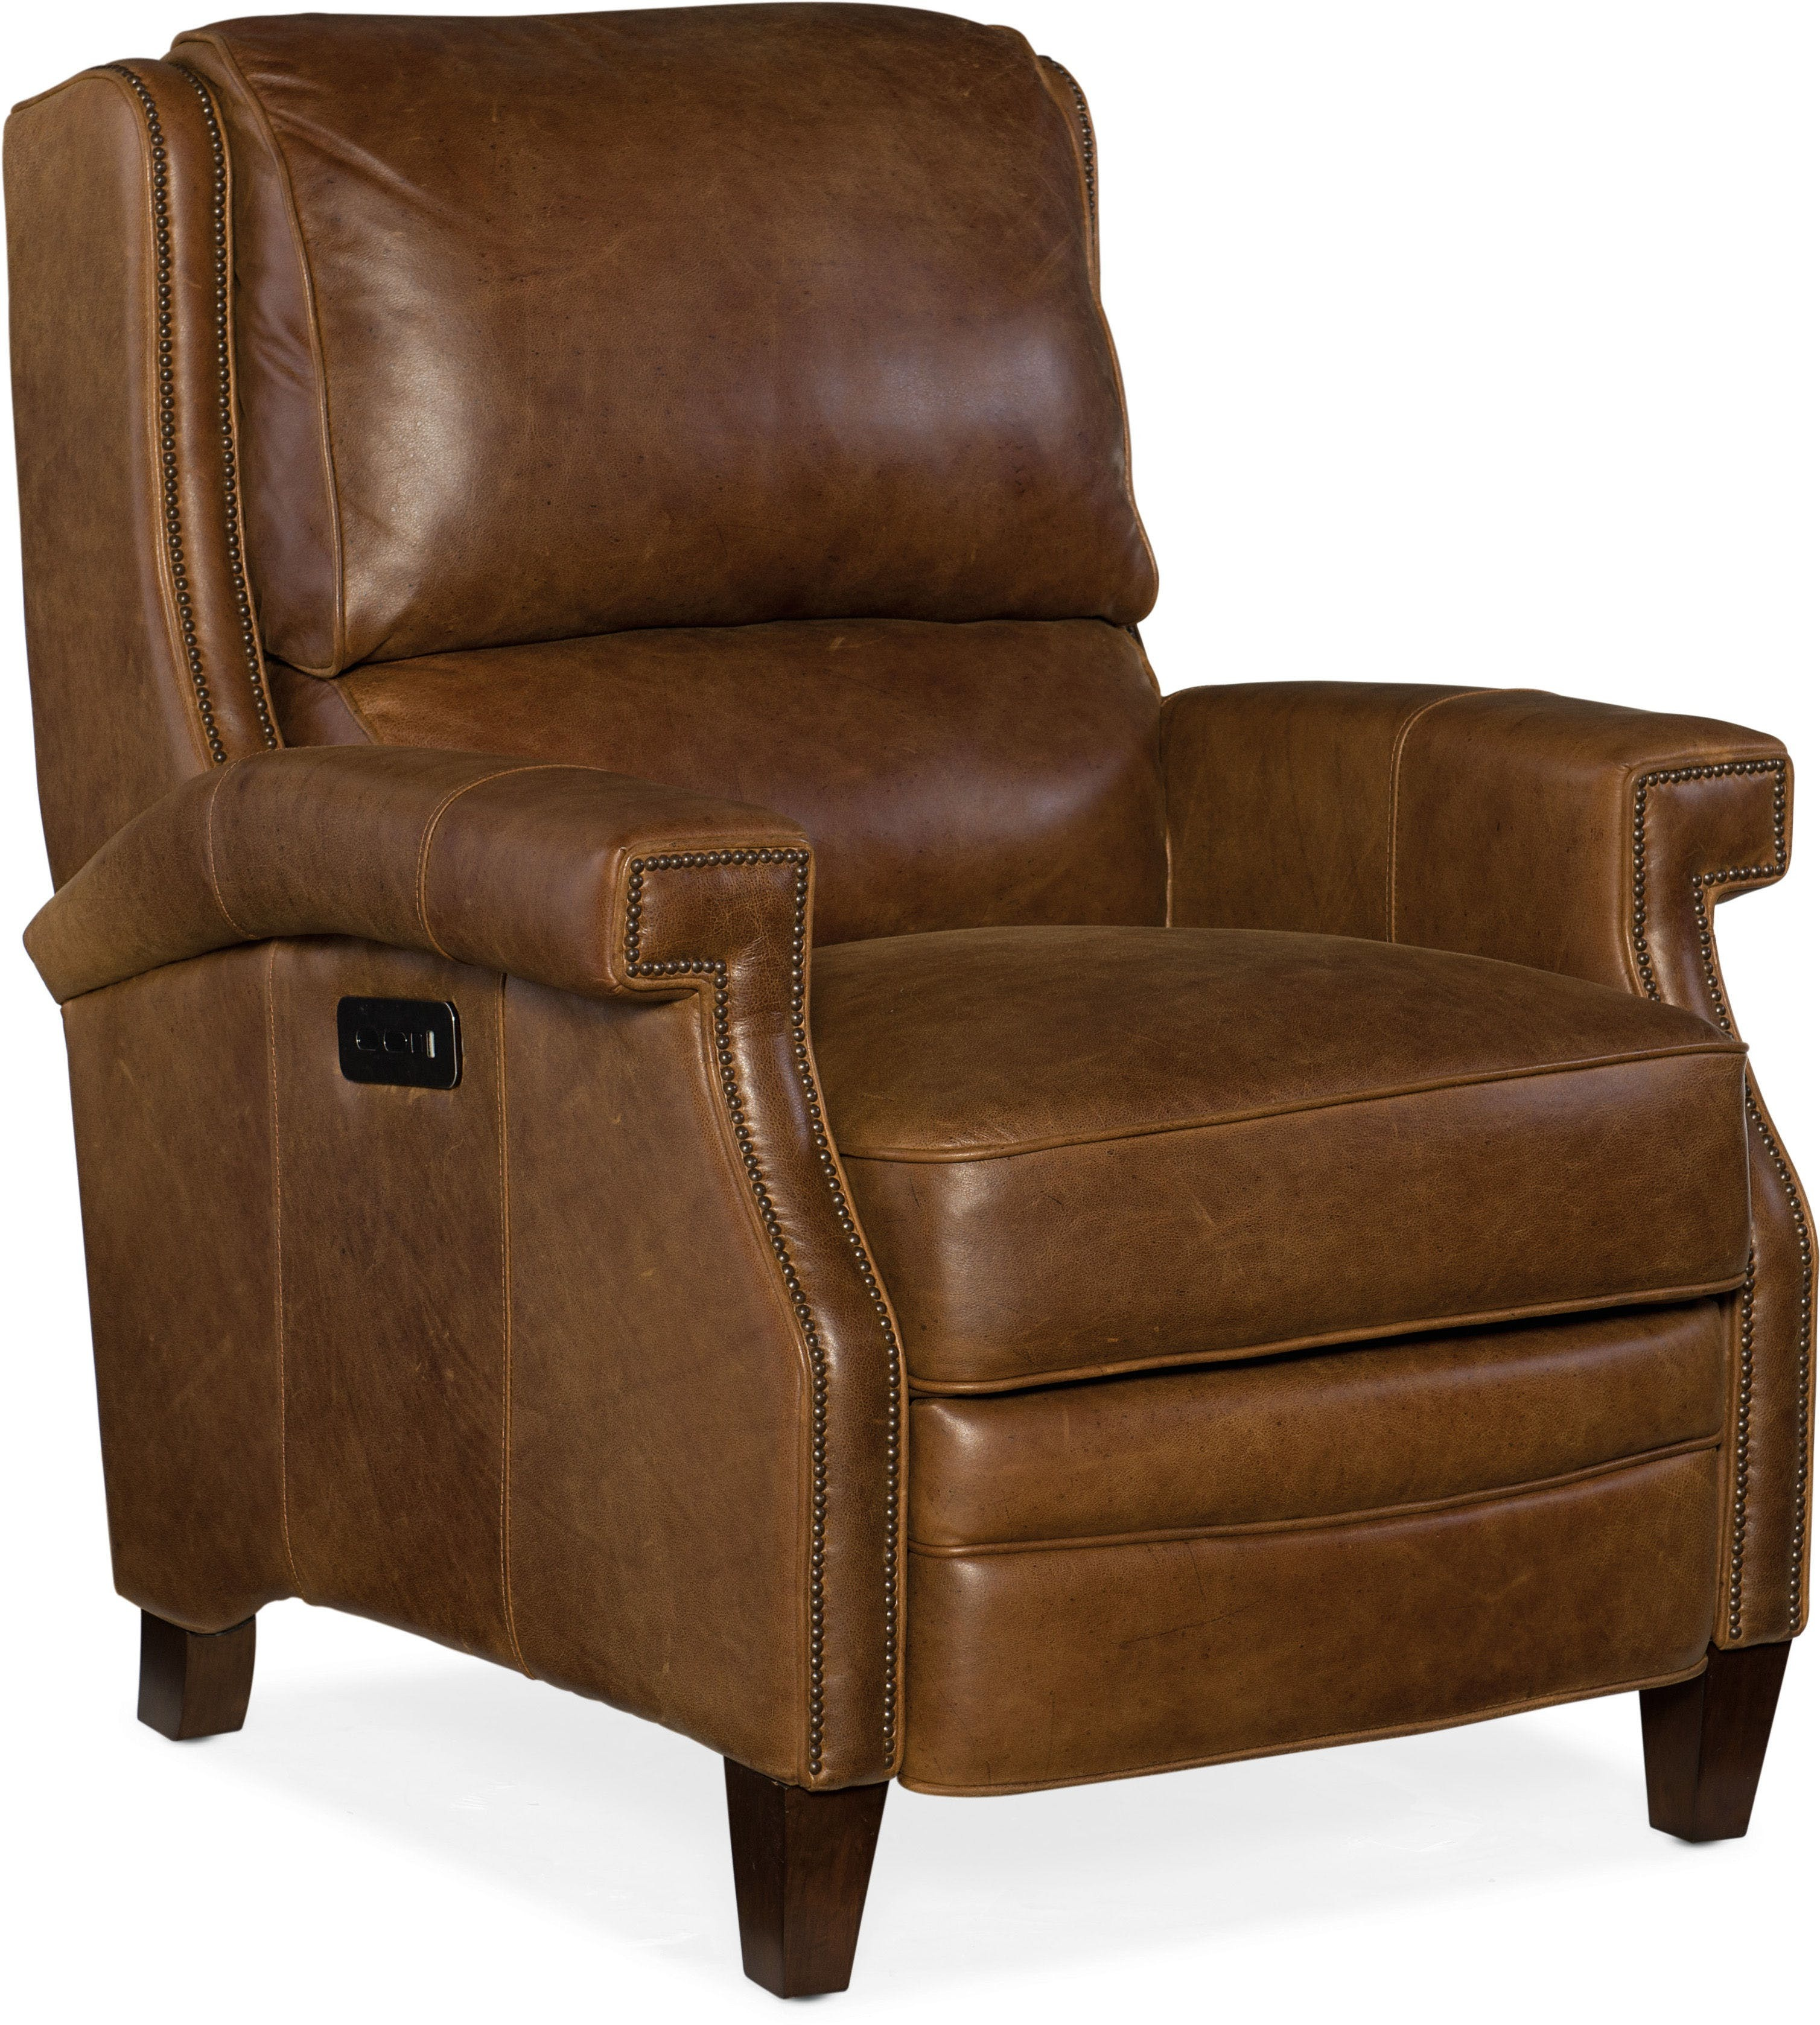 Elan Power Recliner W Power Headrest By Hooker Furniture Nis773461250 Riley S Furniture Mattress